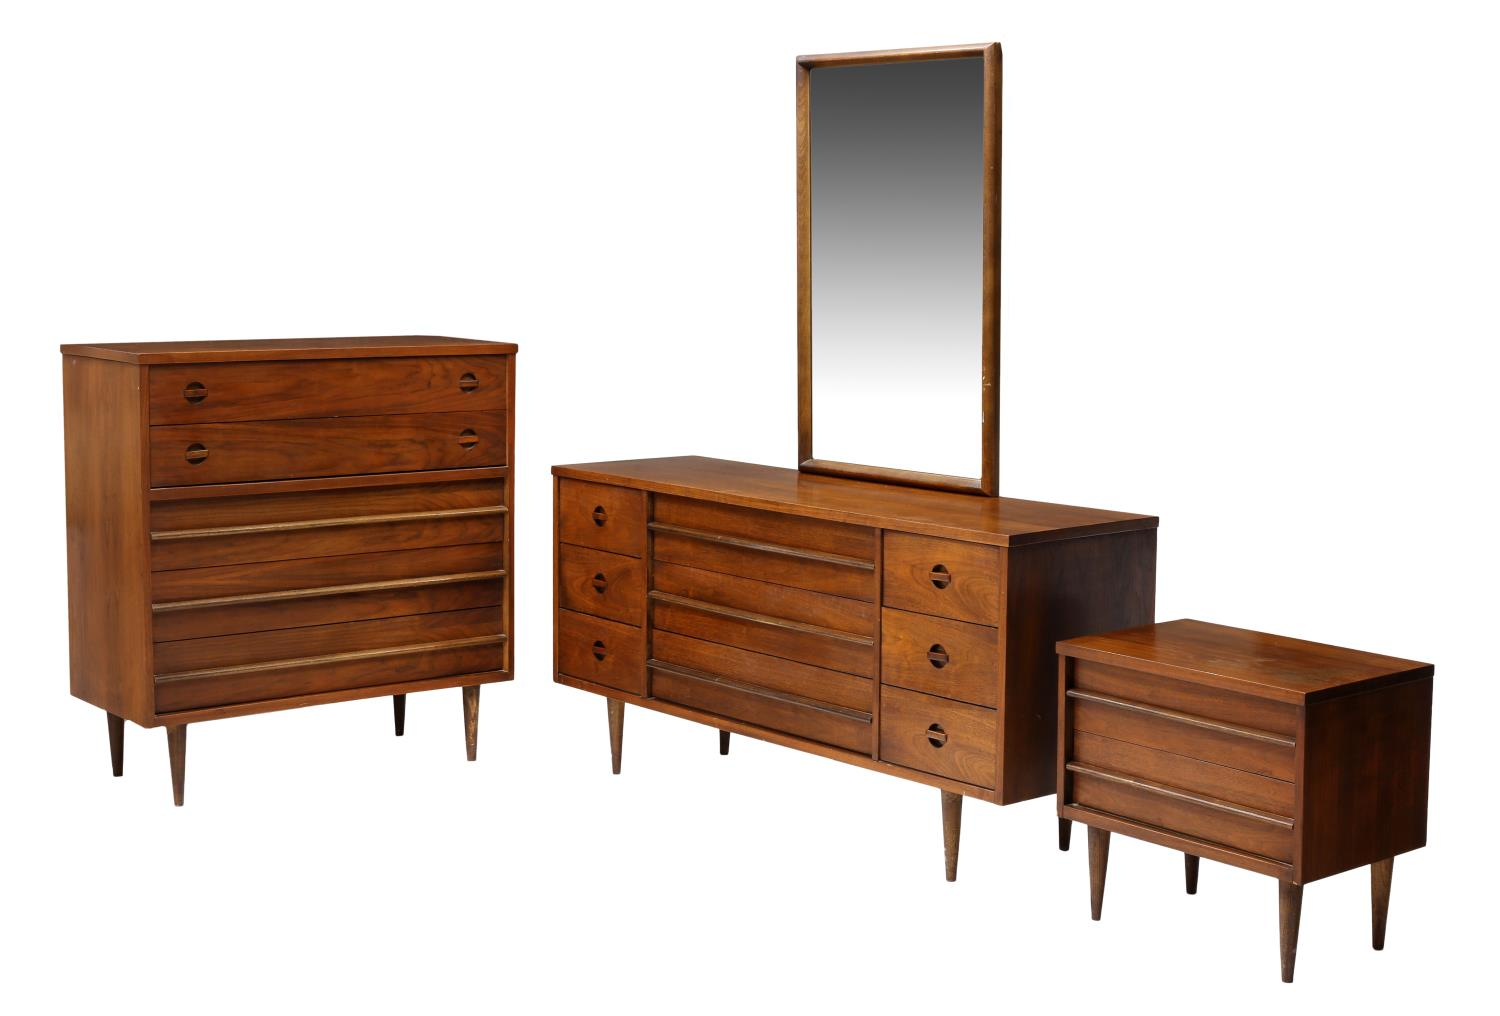 3 Mid Century Modern Bassett Bedroom Furniture May